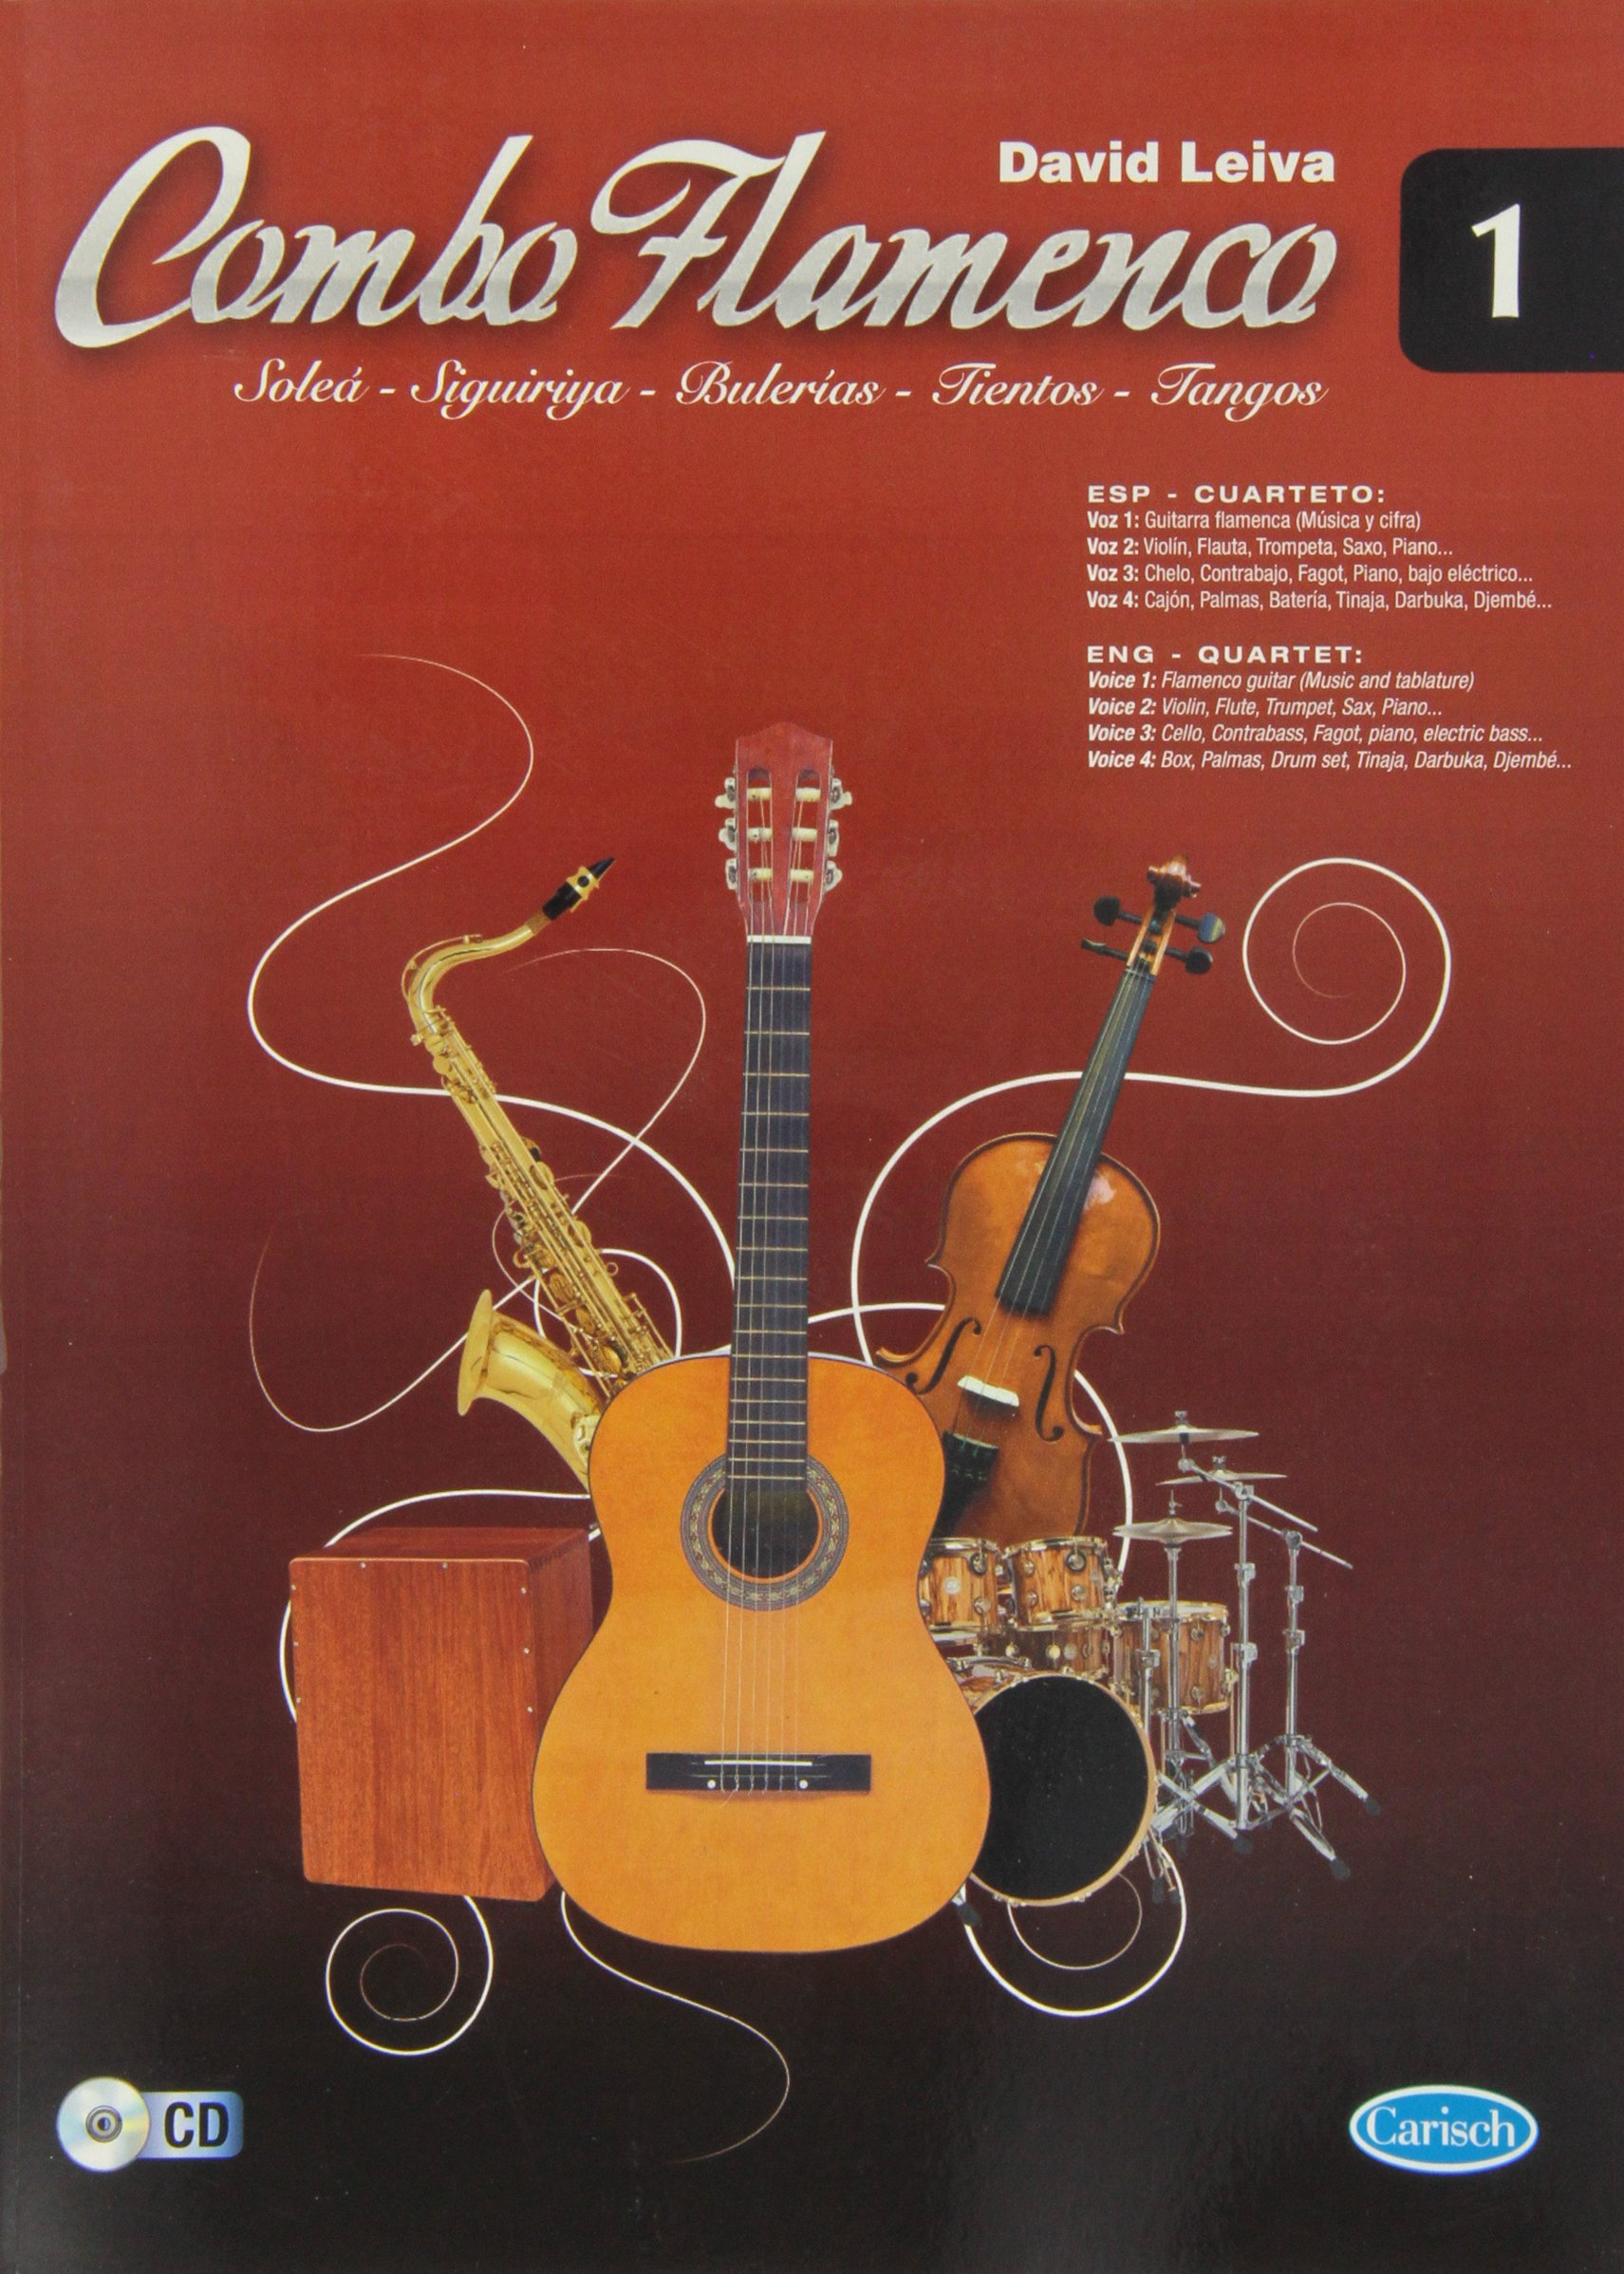 Combo Flamenco, Volume 1. Partitions, CD pour Guitare, Tous Les Instruments (German) Sheet music